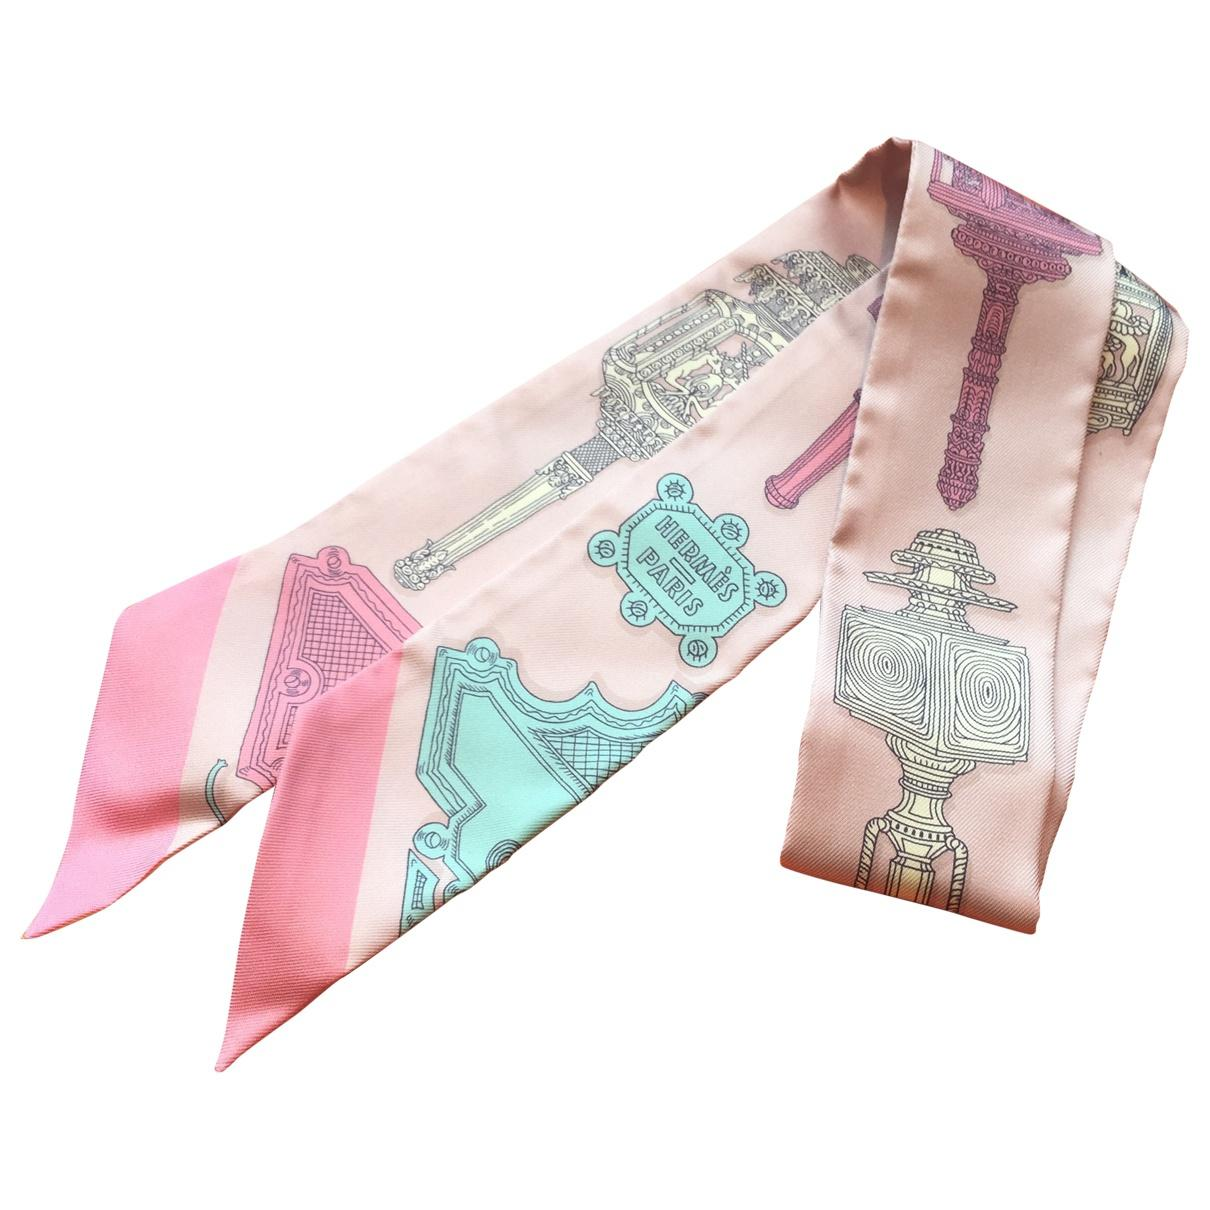 6f0e9ef888a8 Hermès Pre-owned Twilly Pink Silk Scarves in Pink - Lyst